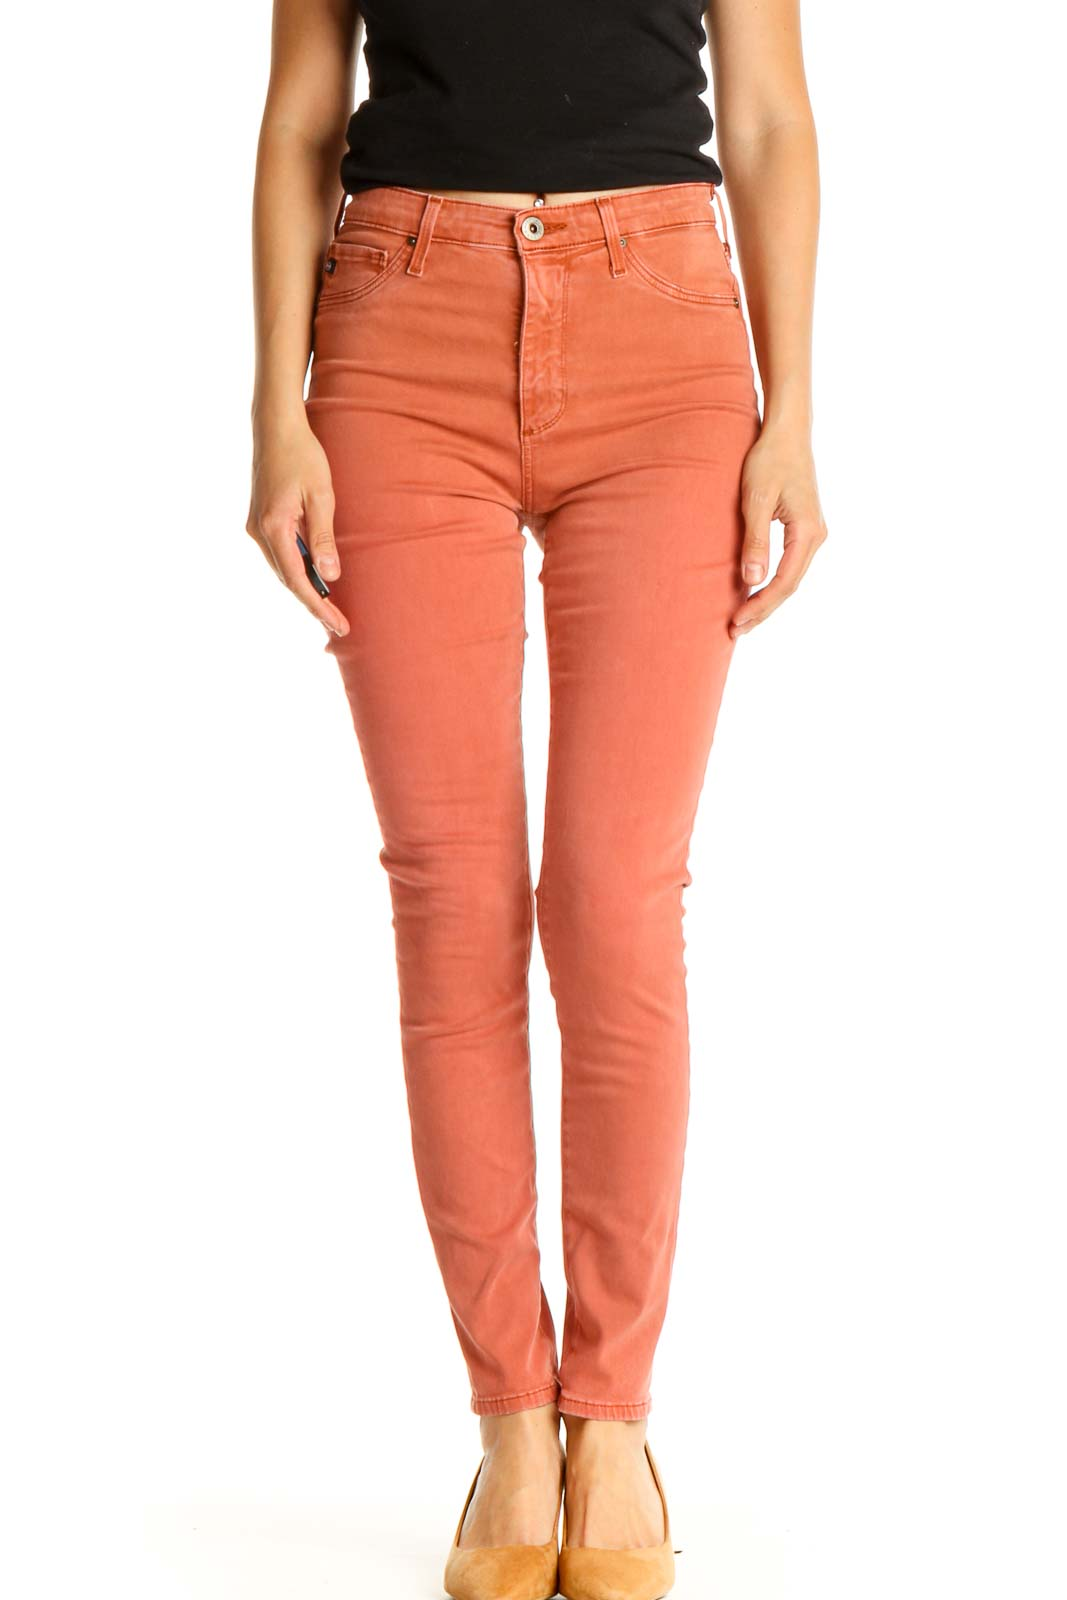 Orange Solid All Day Wear Pants Front